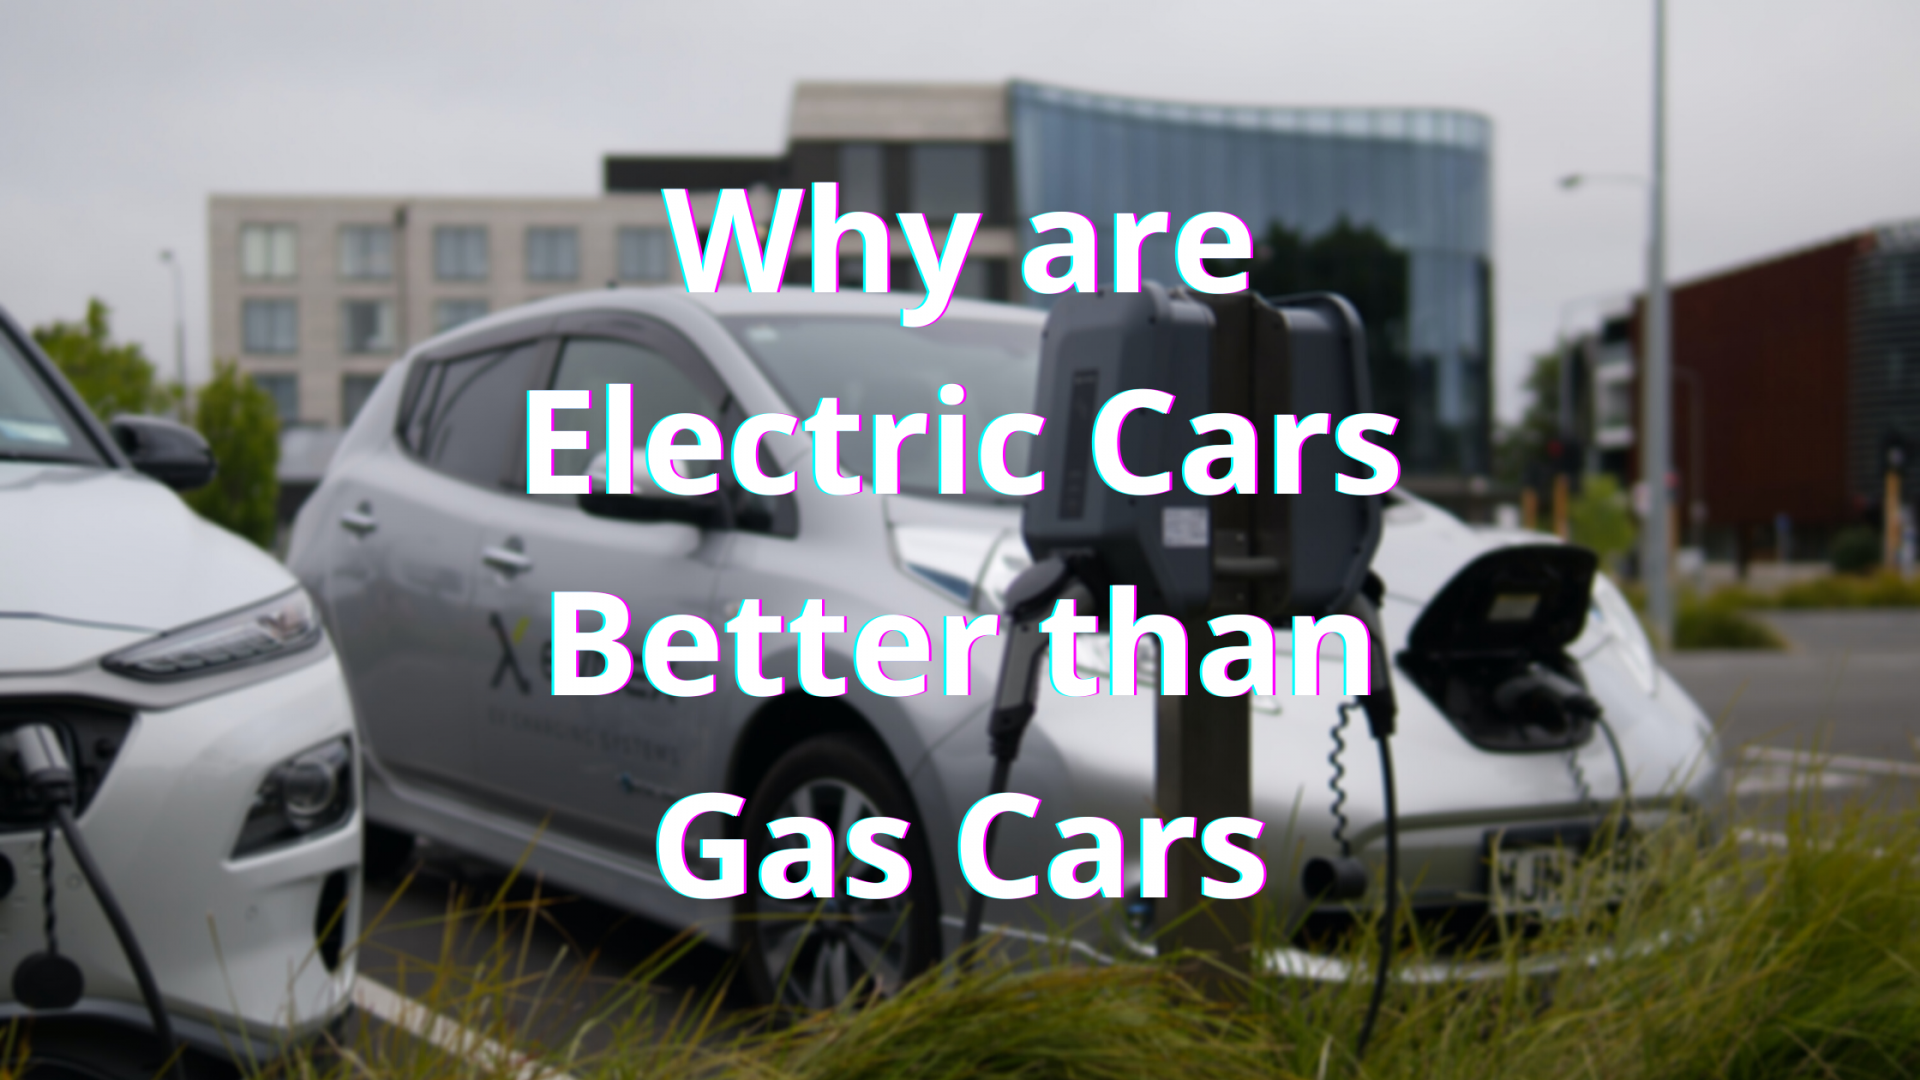 Why are Electric Cars Better than Gas Cars